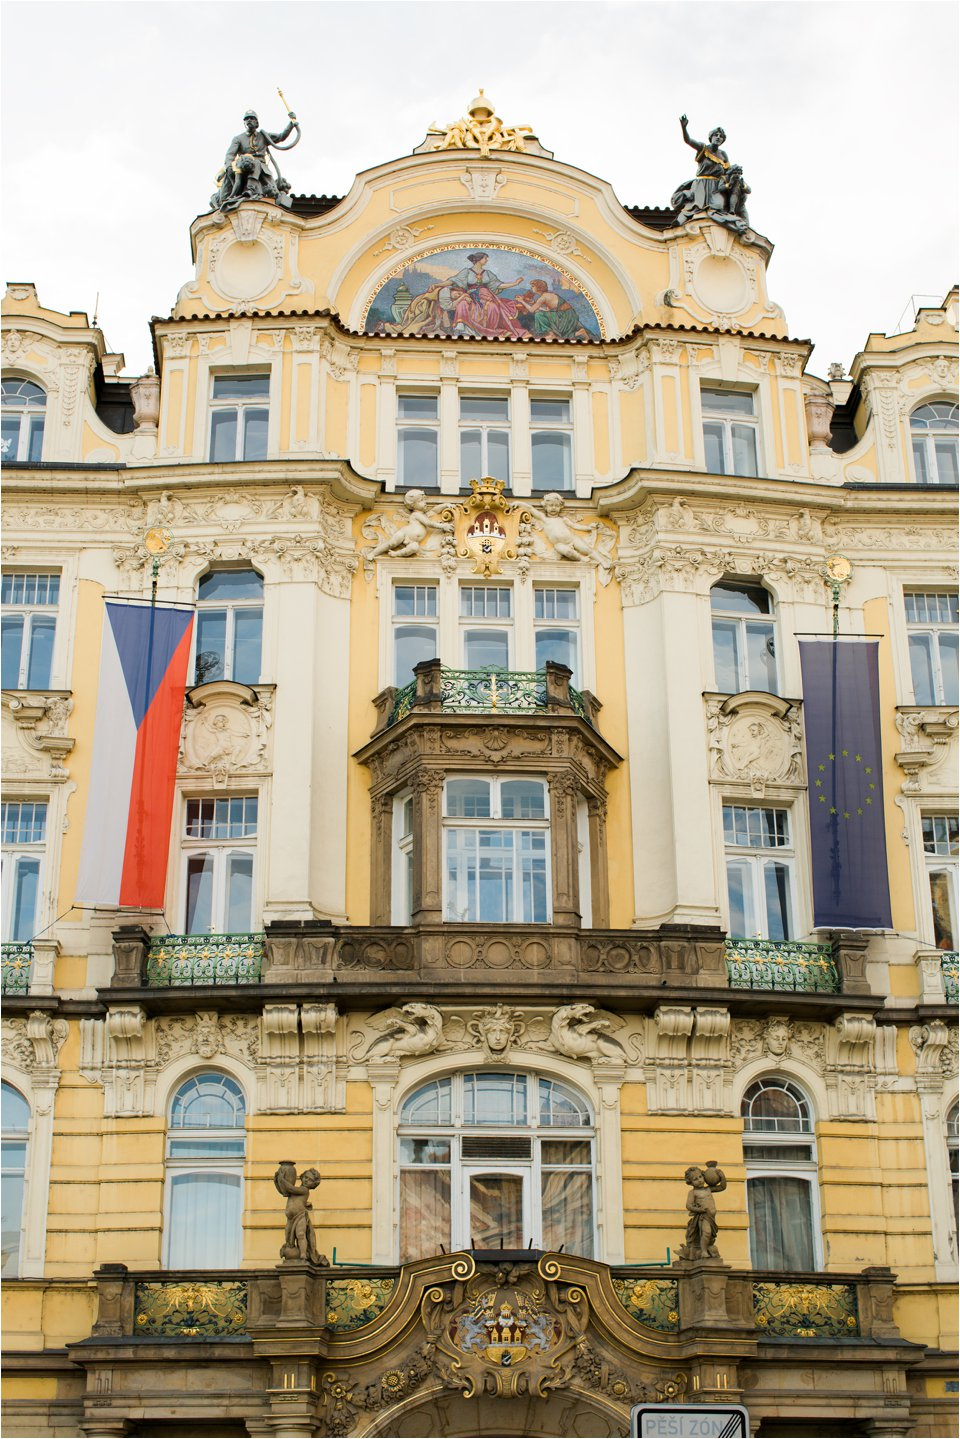 Hotel in Prague (C) Maundy Mitchell